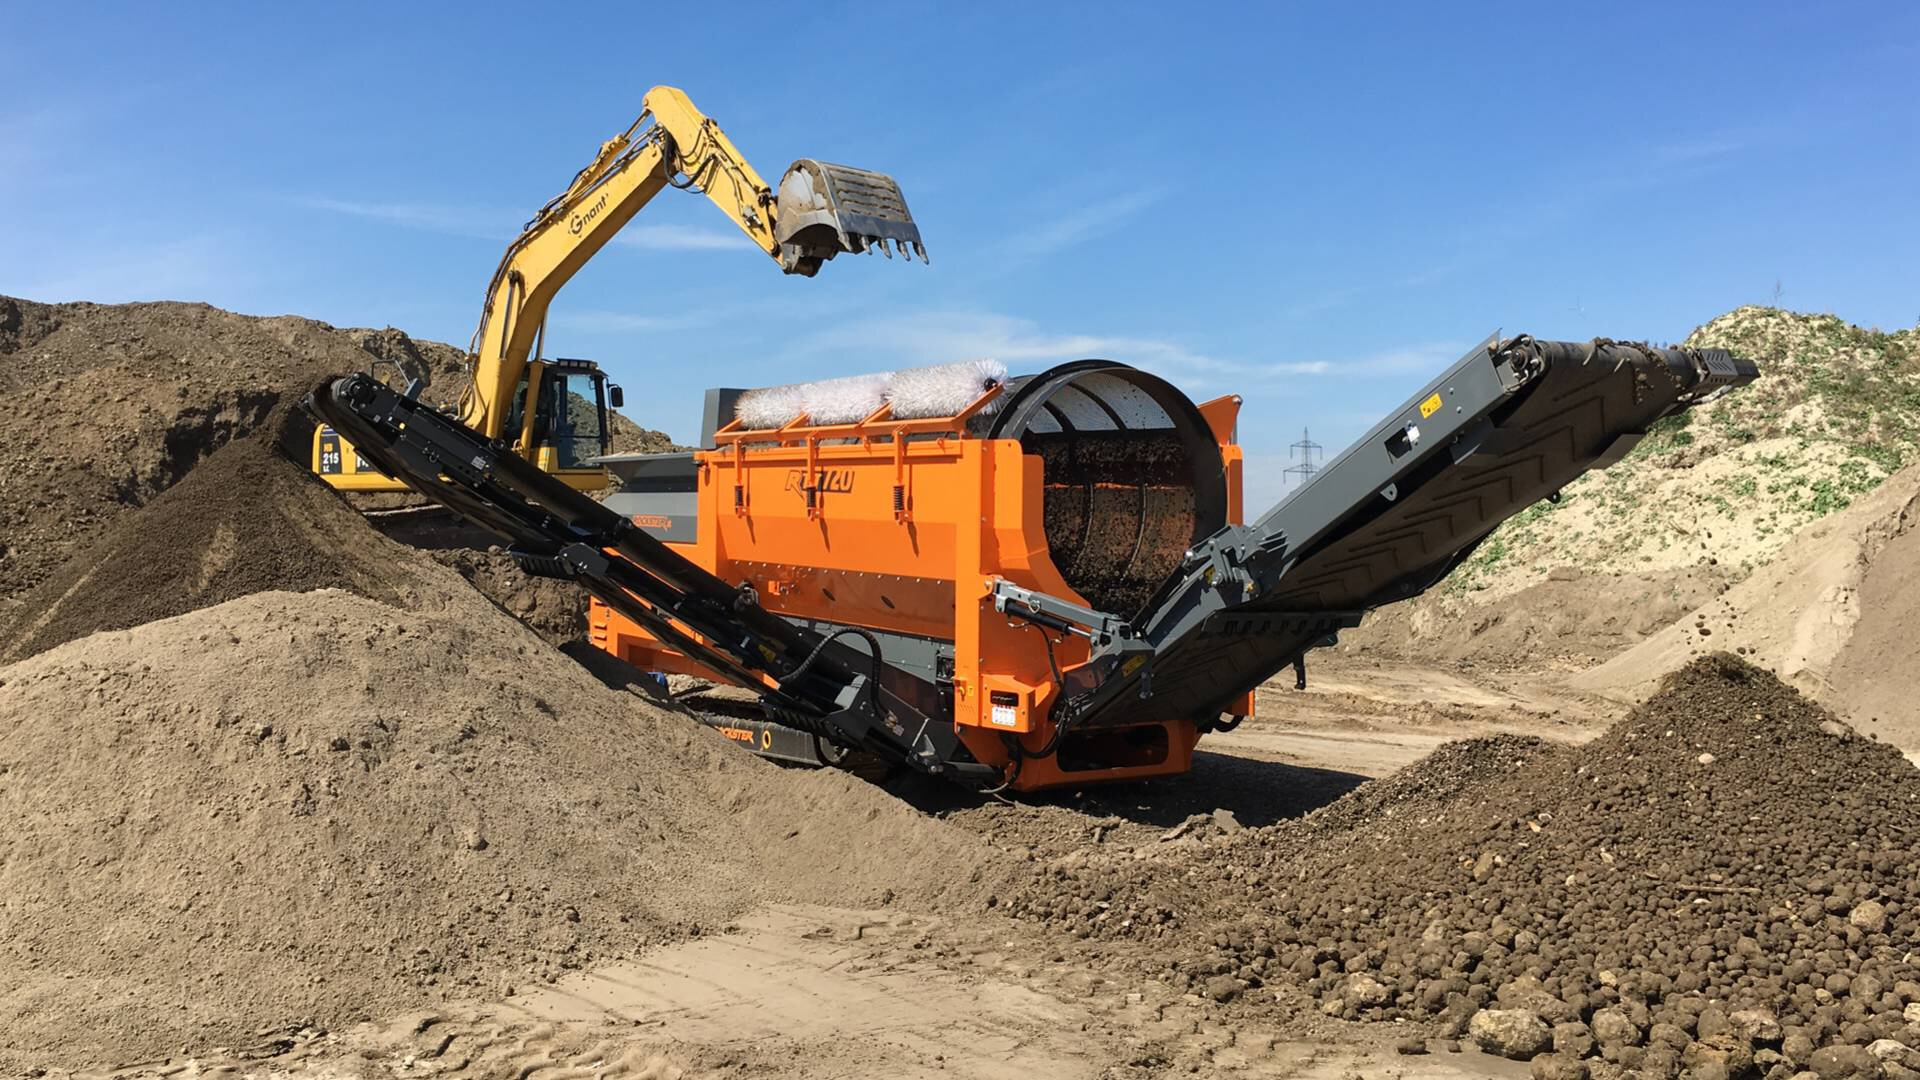 Gallery image 4 - TROMMEL SCREEN  - The extremely efficient, but still very compact trackmounted trommel screen RTT720 is applicable for C&D waste as well as for residual waste, quarry overburden, top soil, compost, wood chips or incinerator ash.